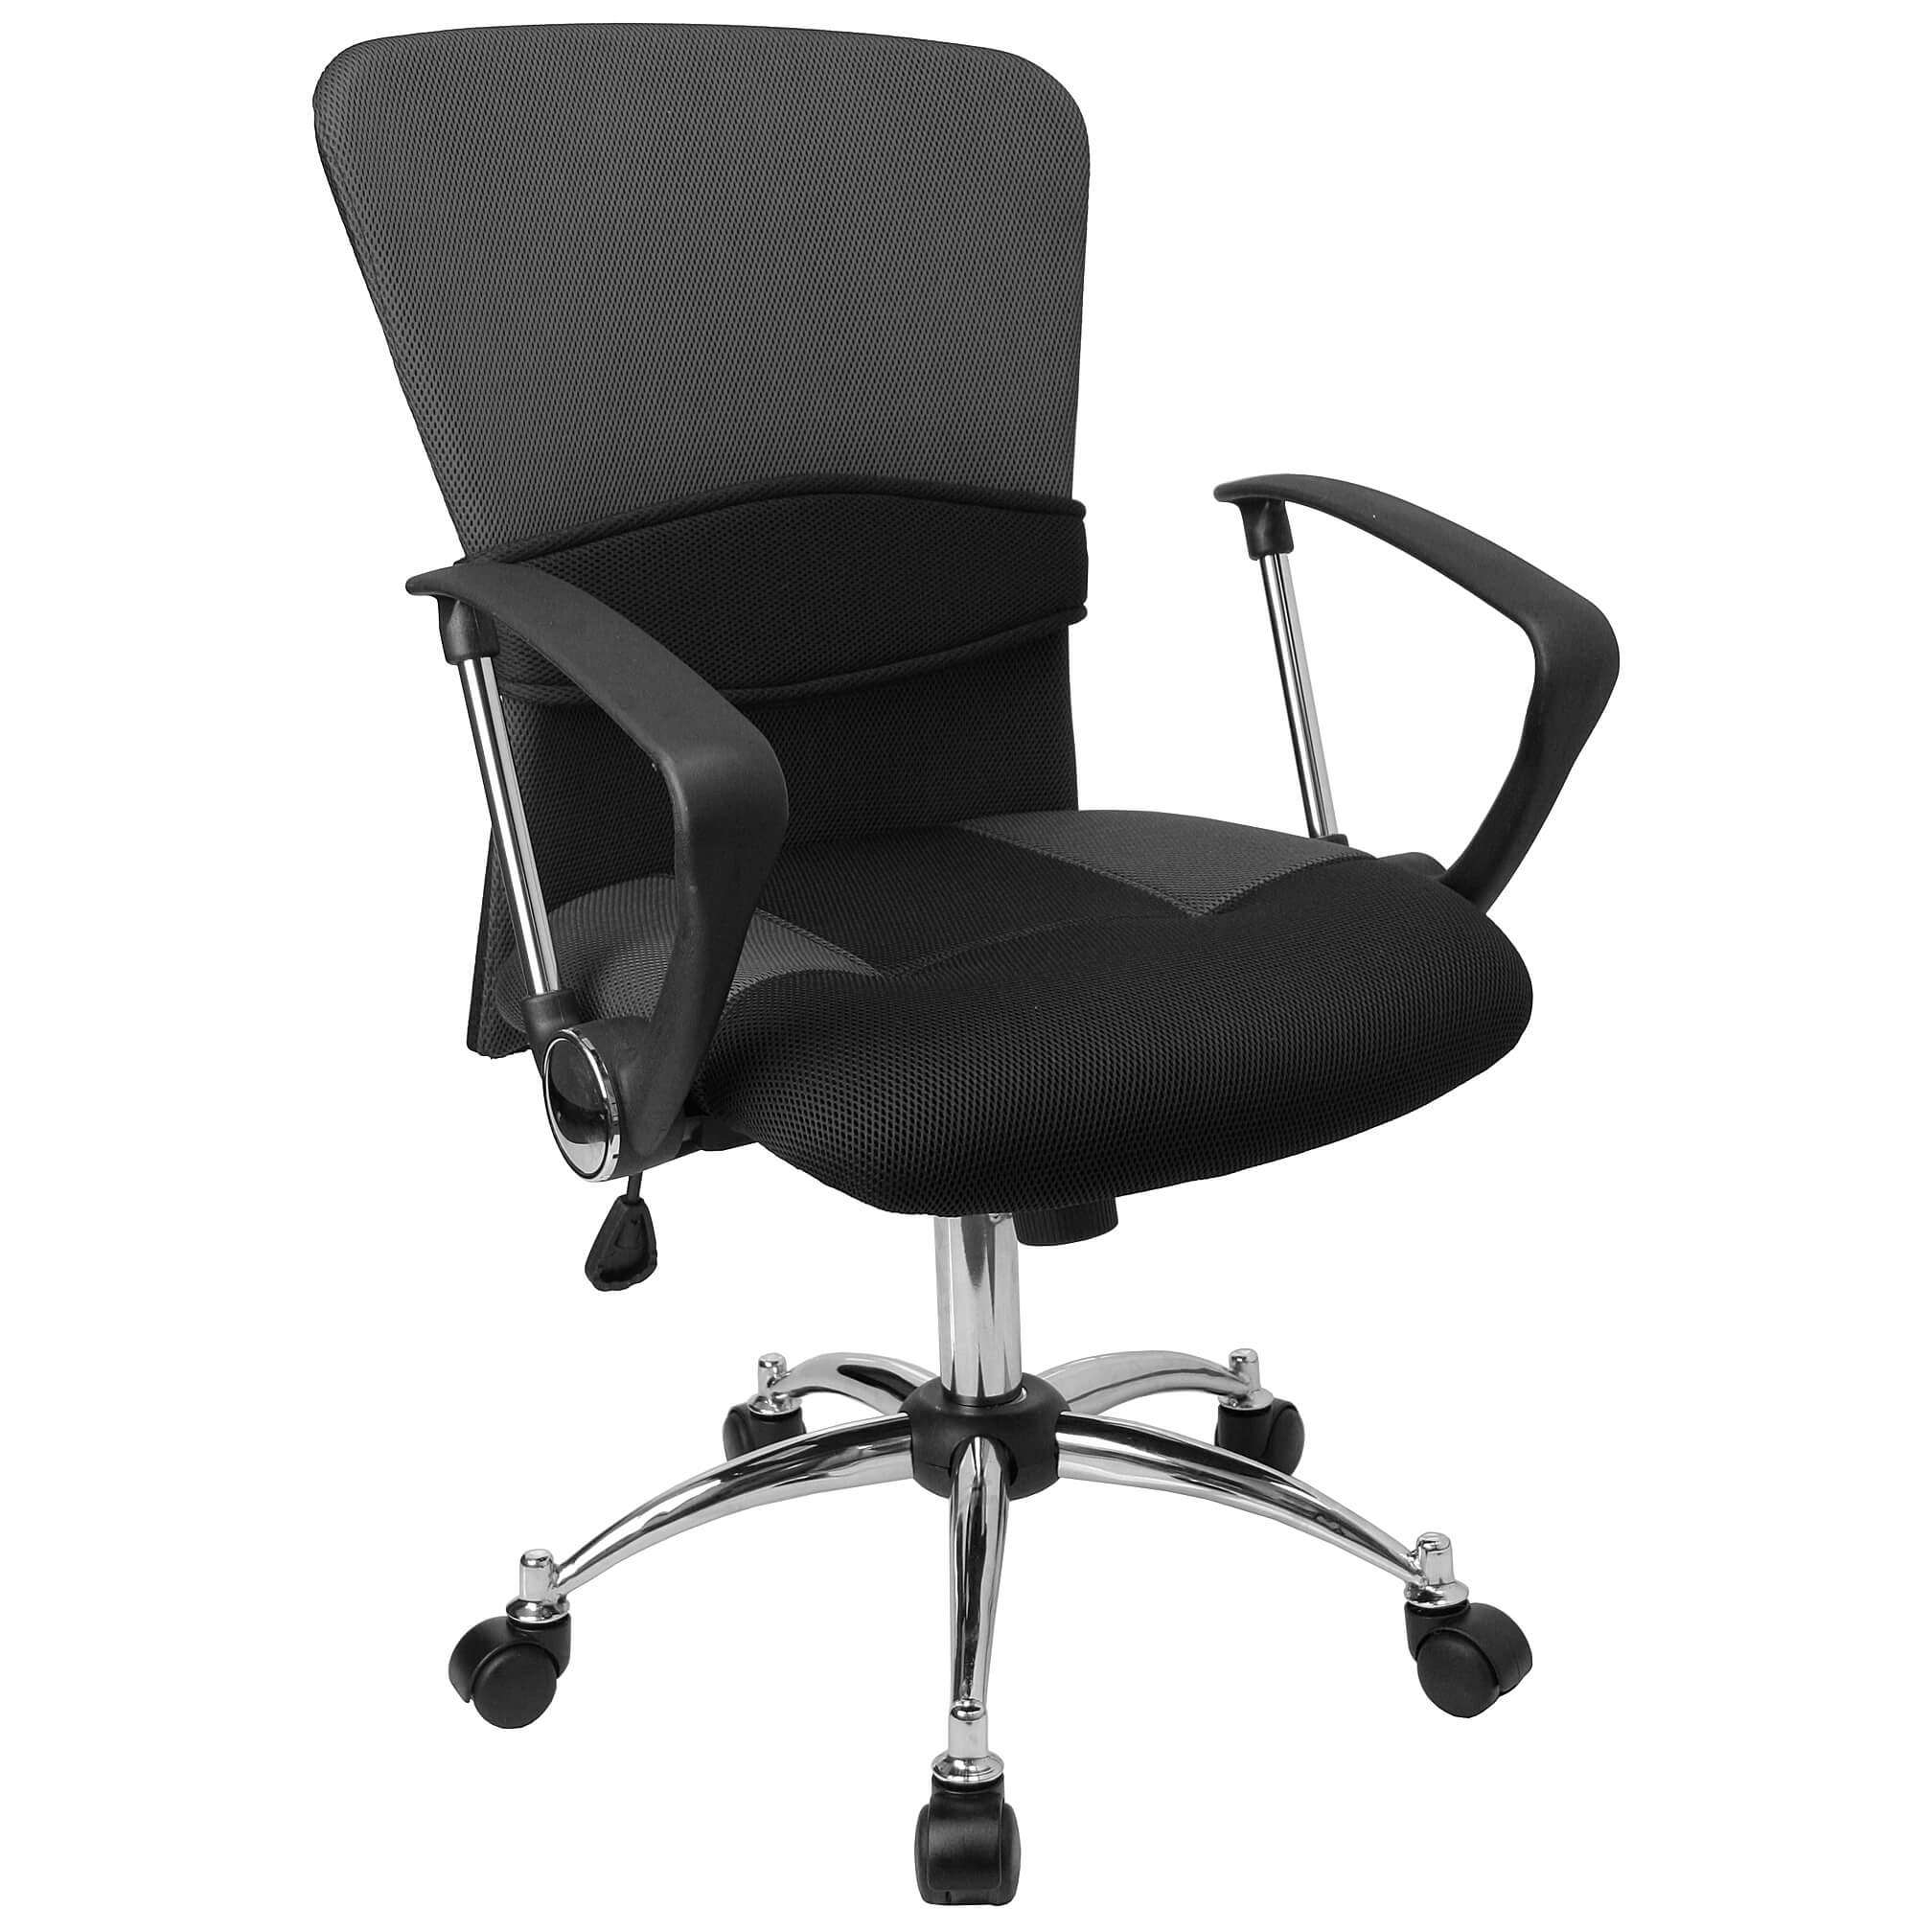 Cool desk chairs CUB LF W23 GREY GG FLA